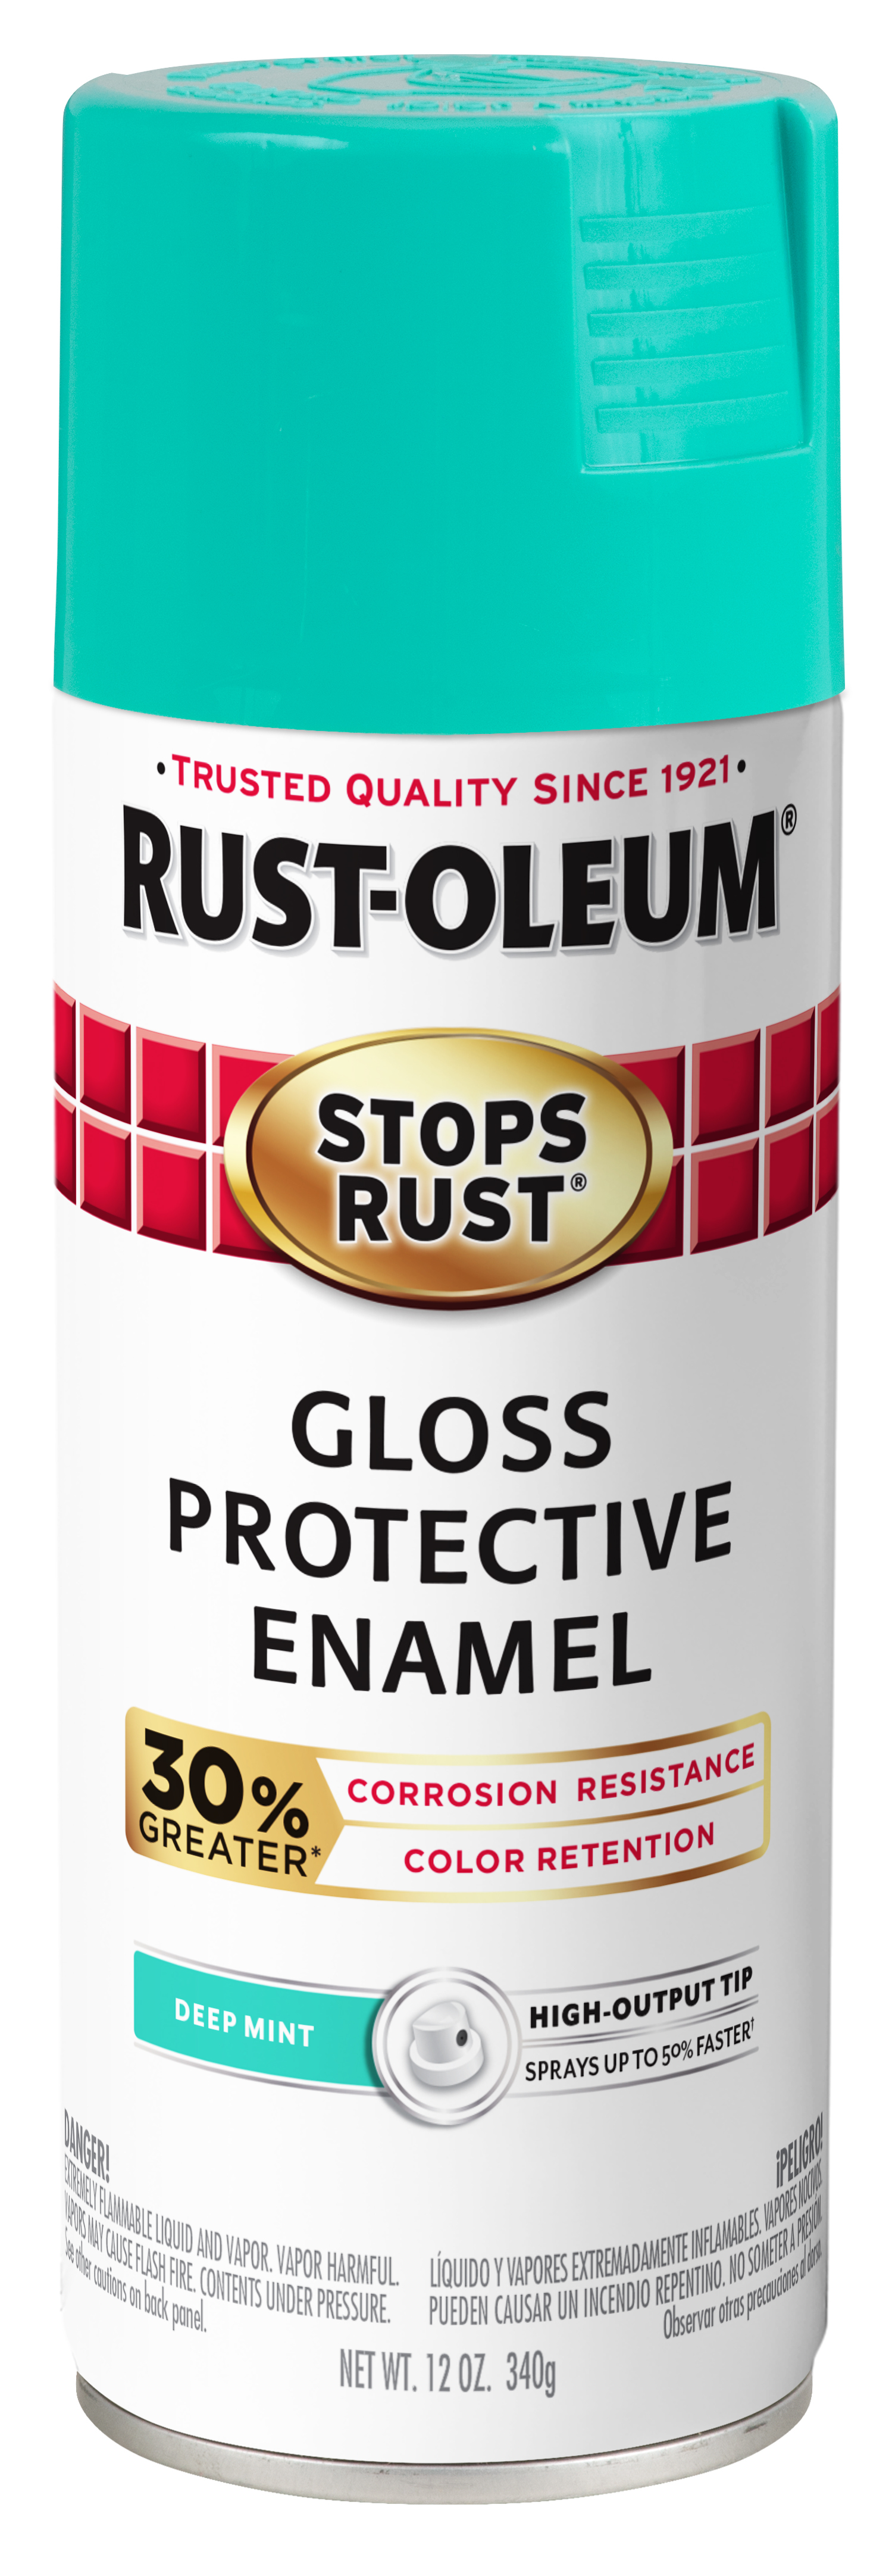 Rust-Oleum Stops Rust Advanced Gloss Deep Mint Protective